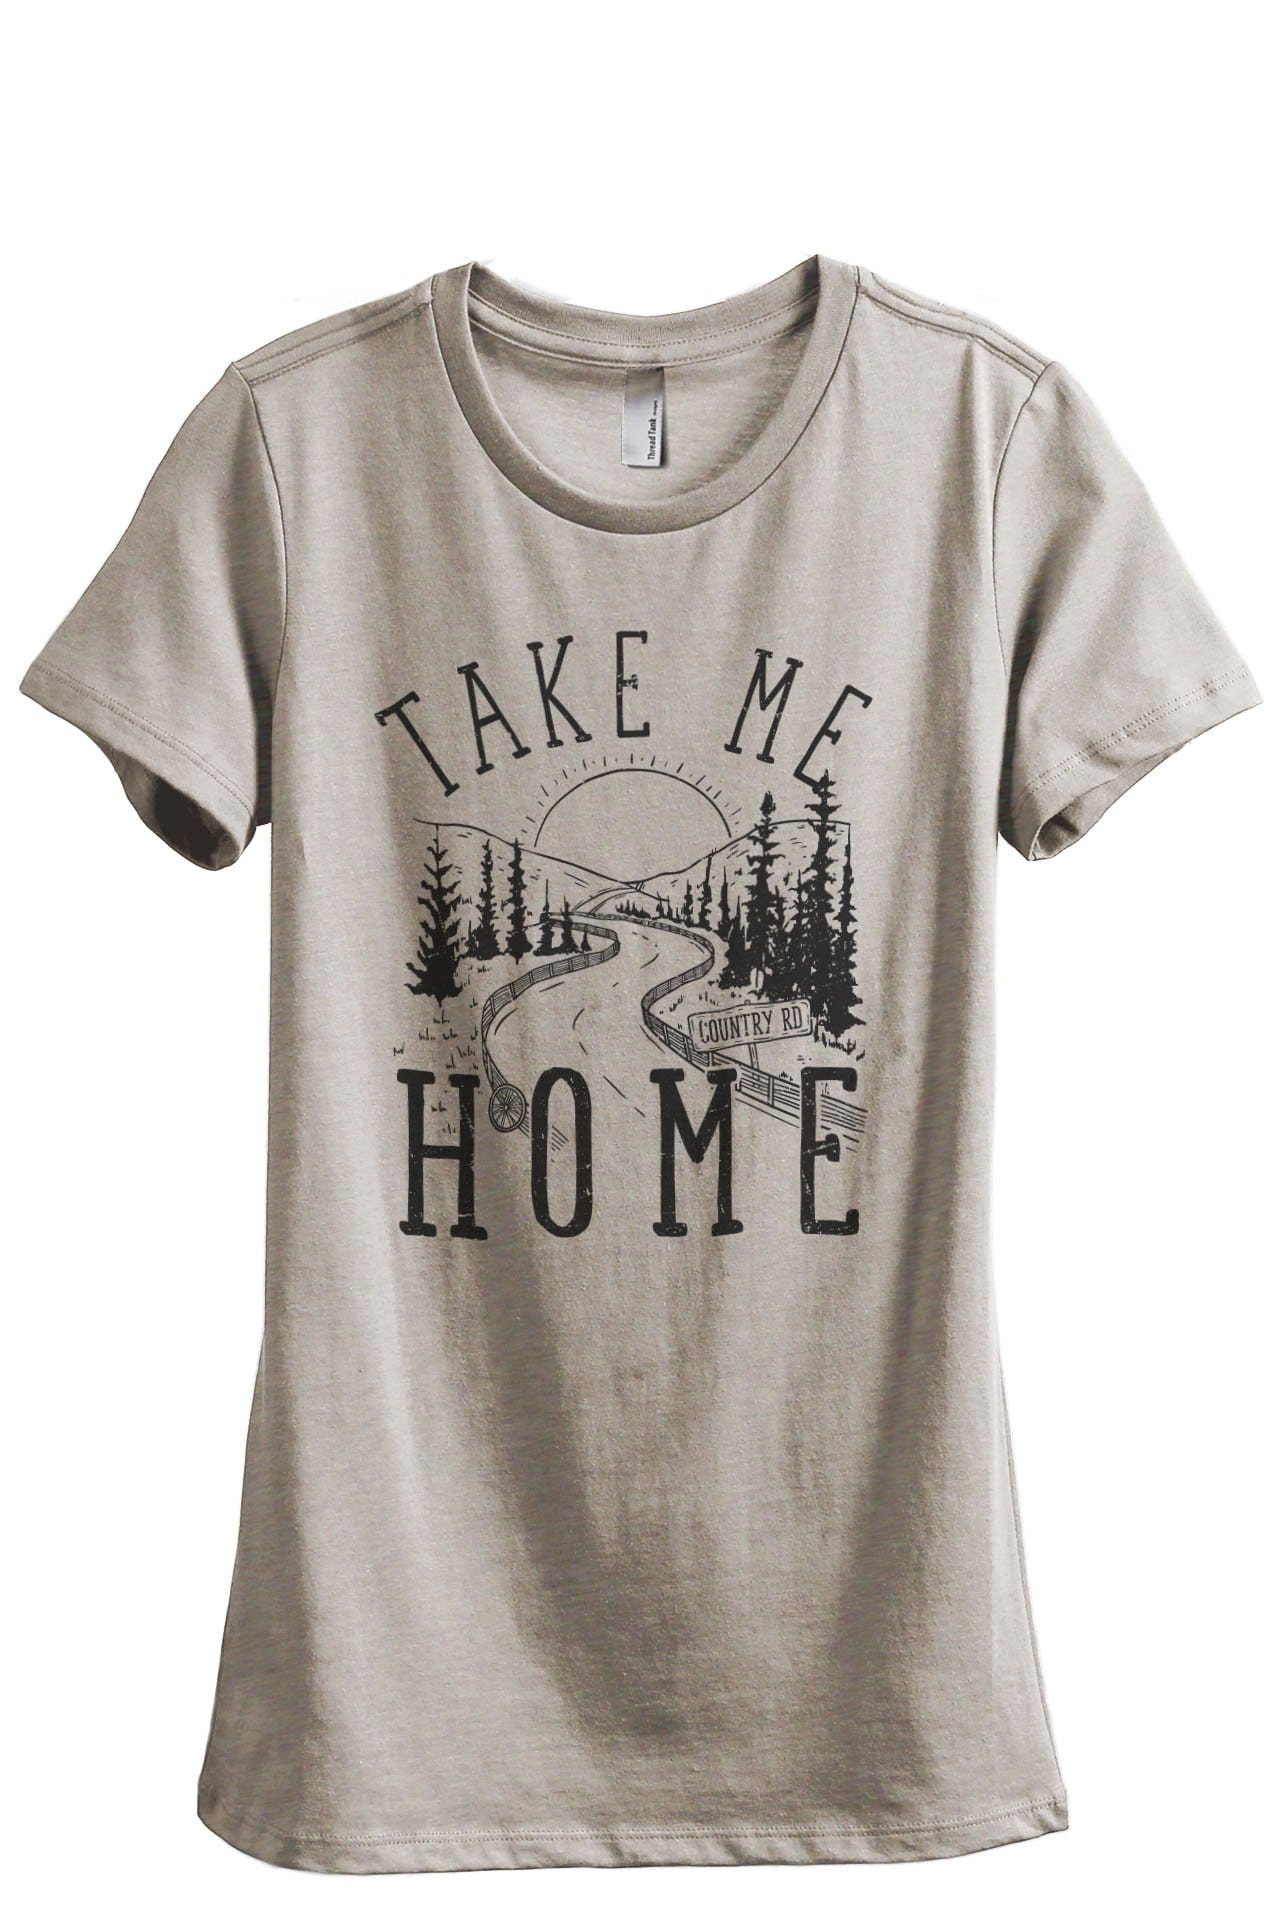 Take Me Home Country Road Women's Relaxed Crewneck T-Shirt Top Tee Heather Tan